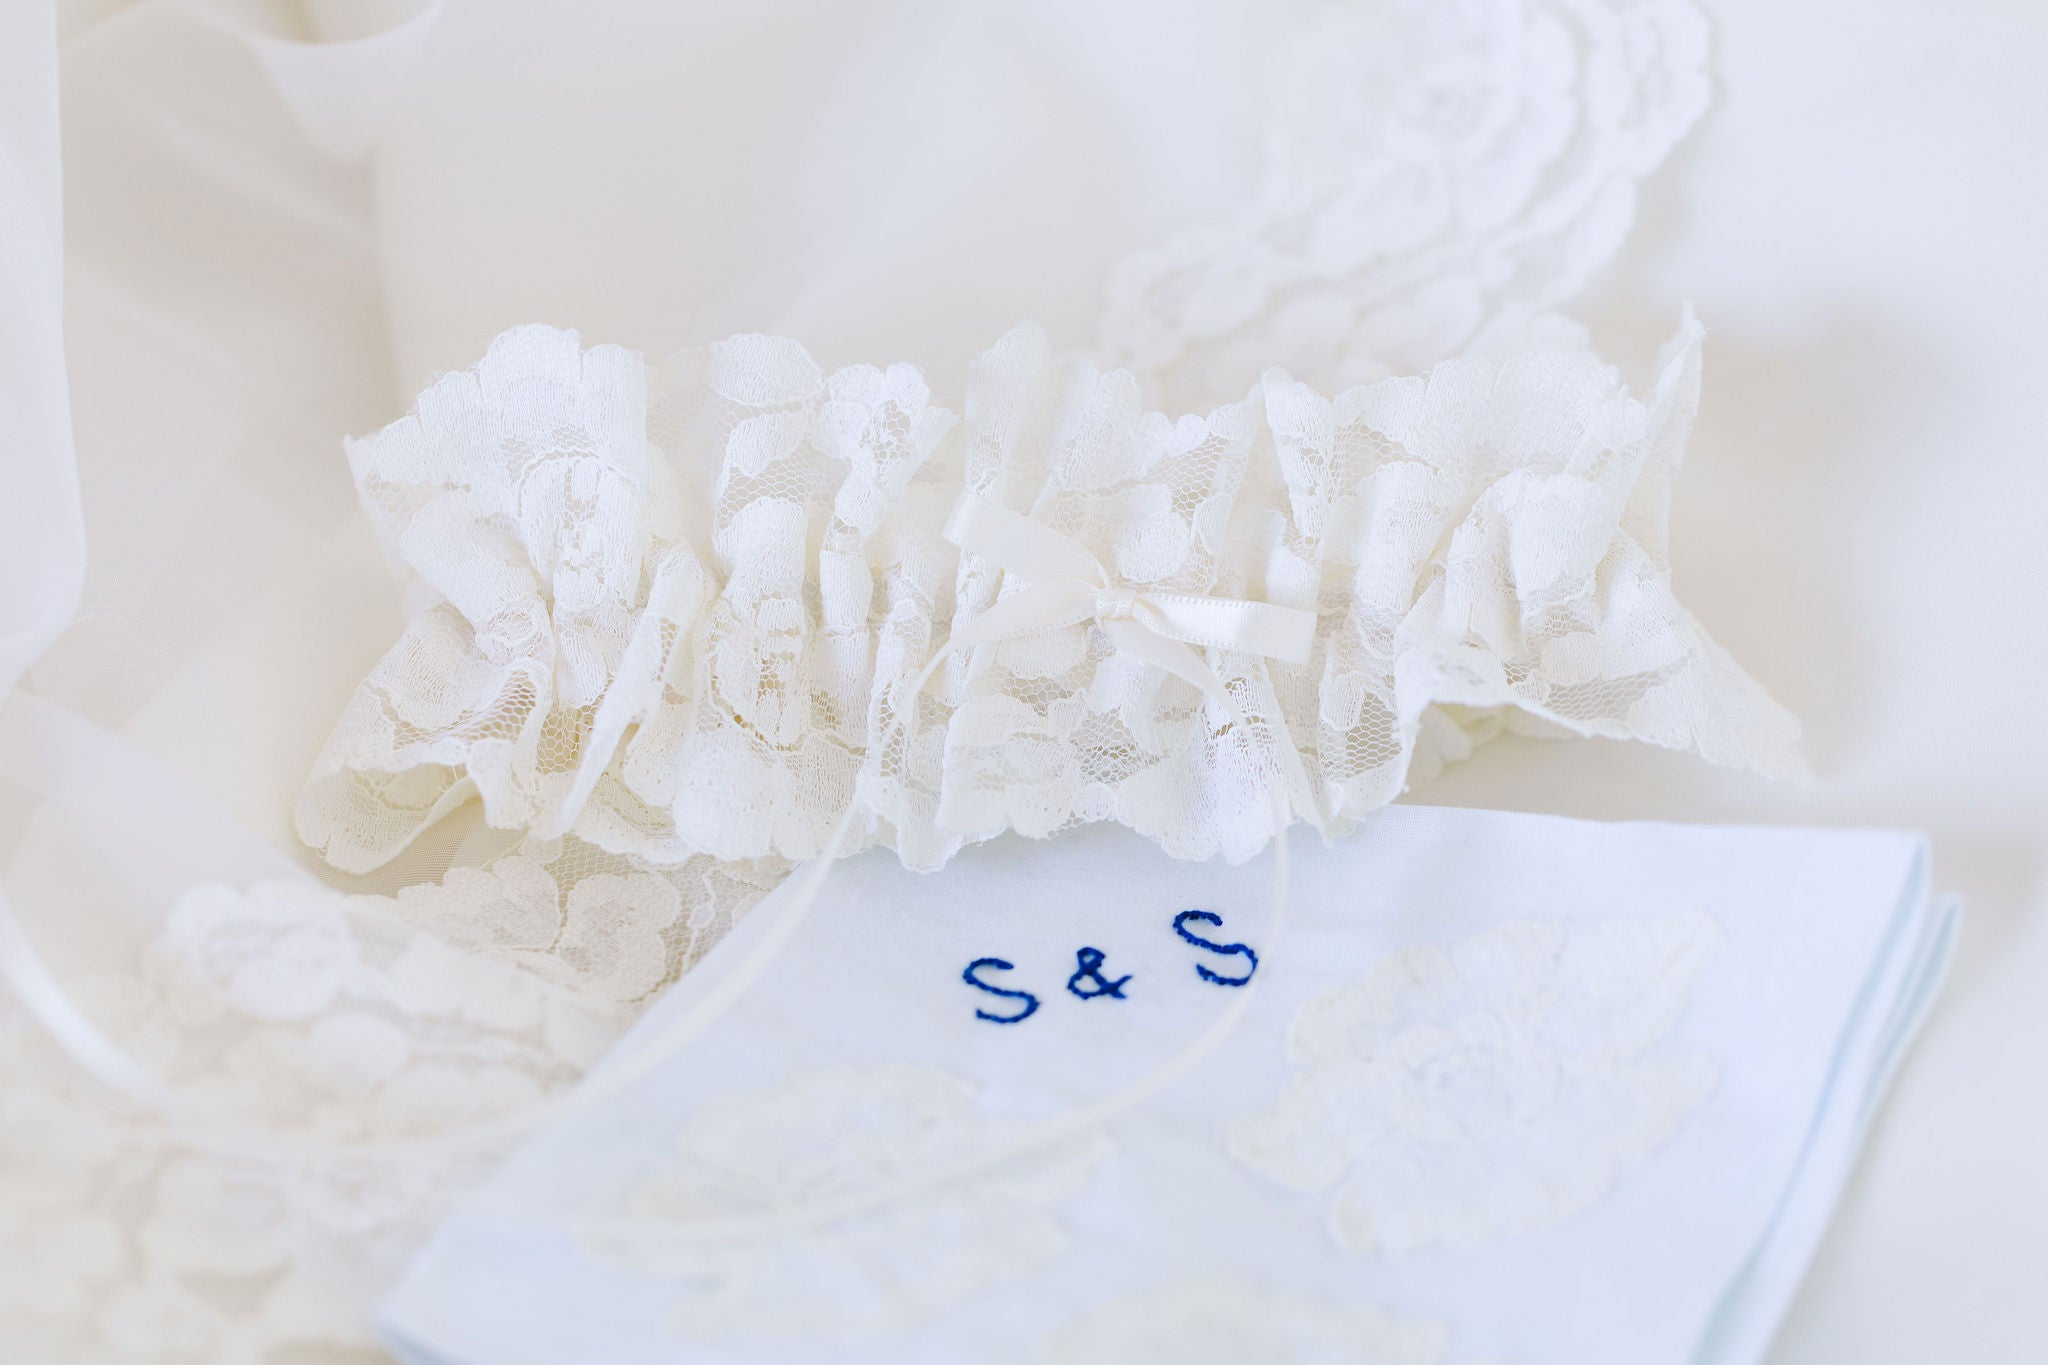 garter and handkerchief handmade from the bride's mother's wedding dress lace by The Garter Girl